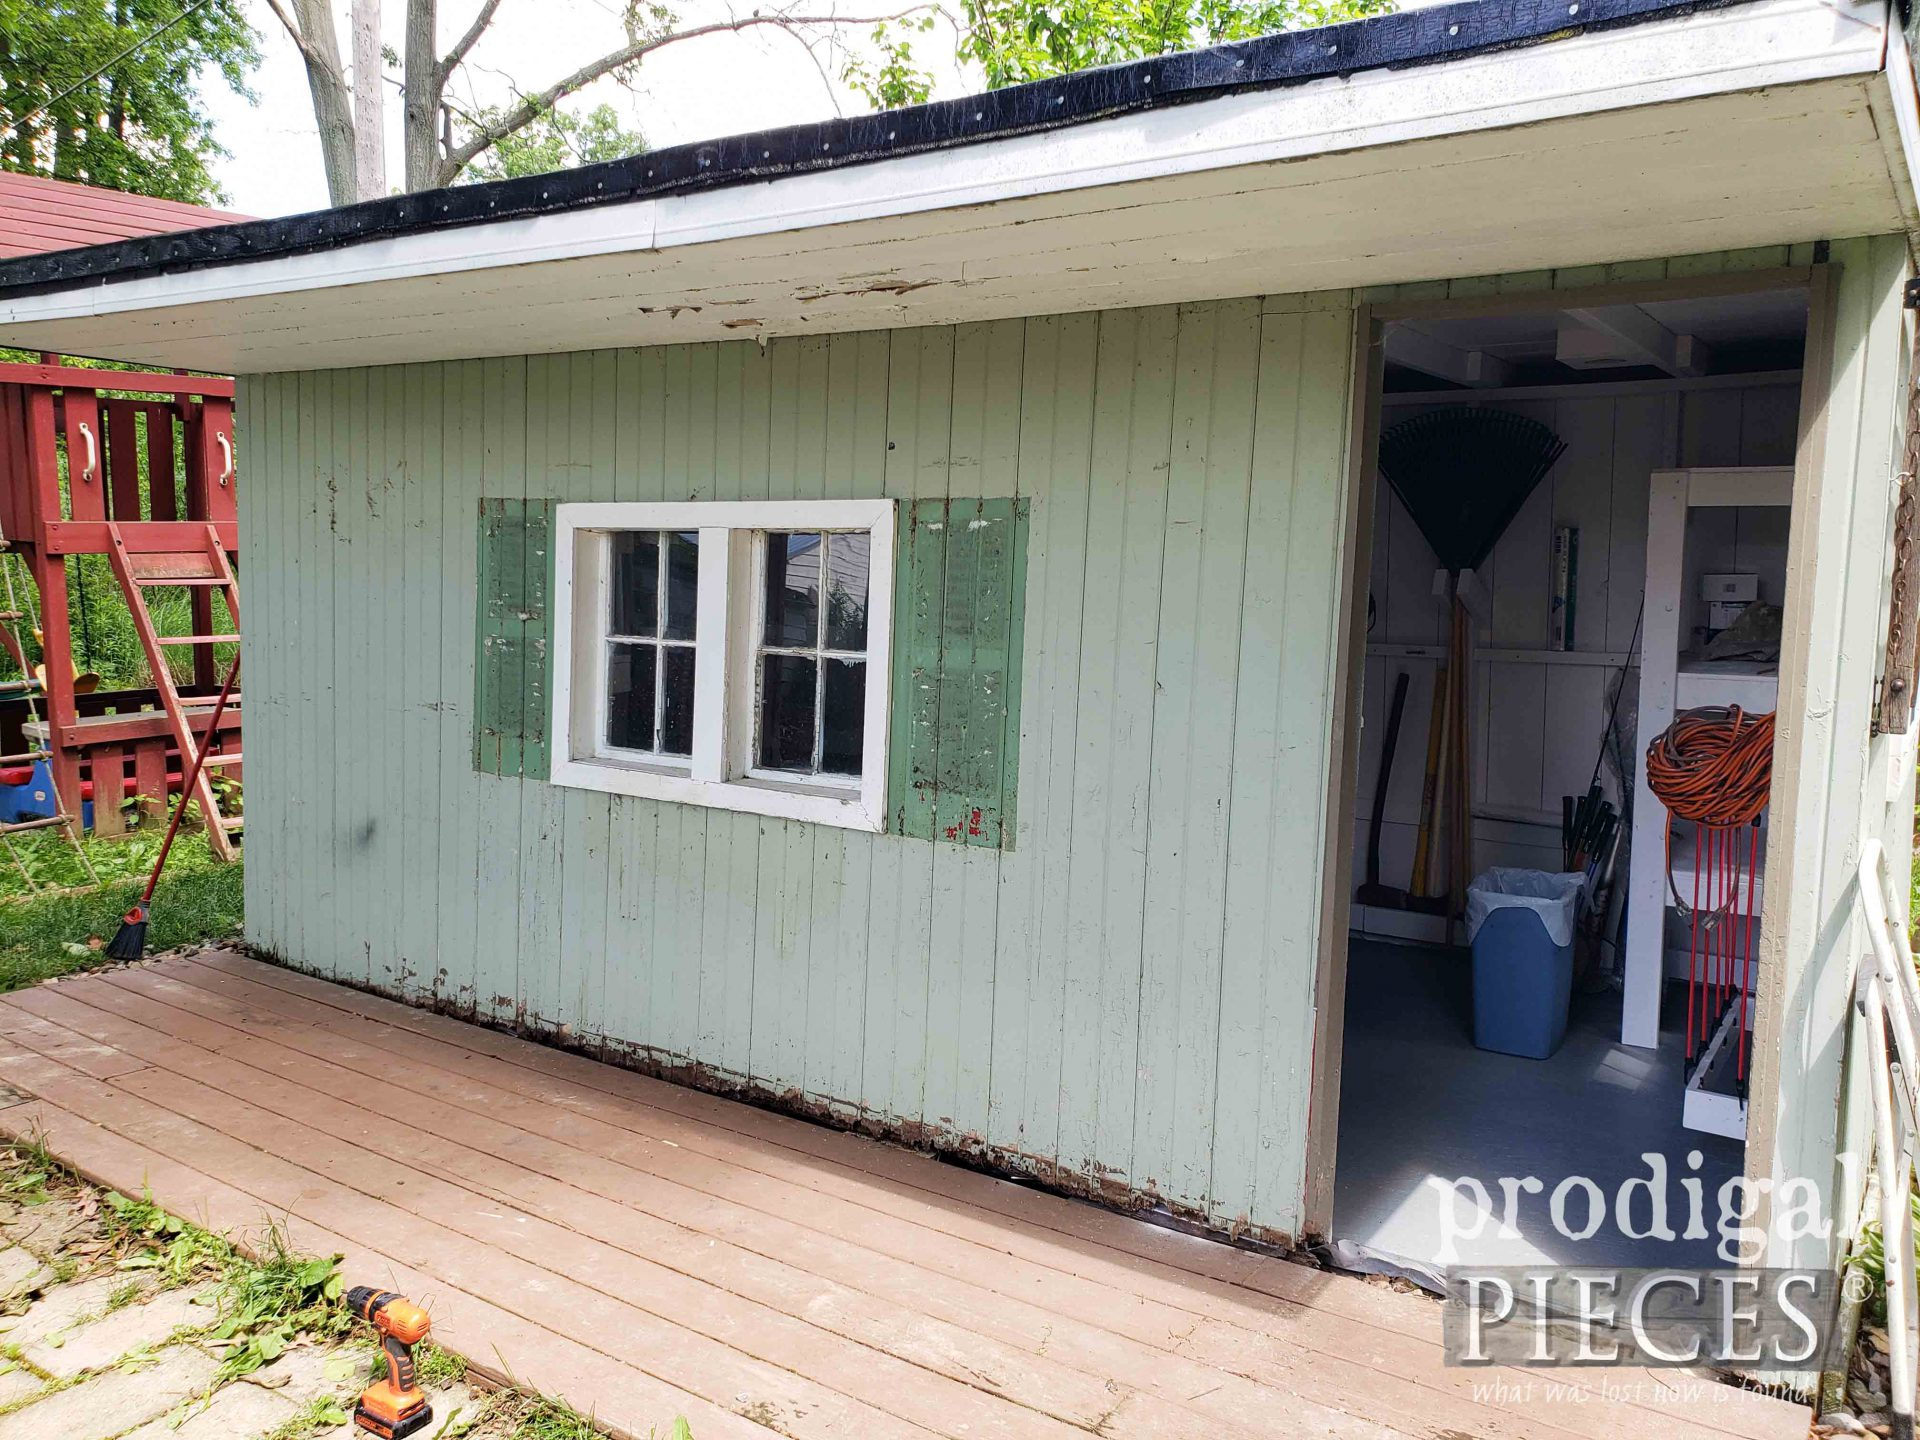 Garden Shed Front Before | prodigalpieces.com